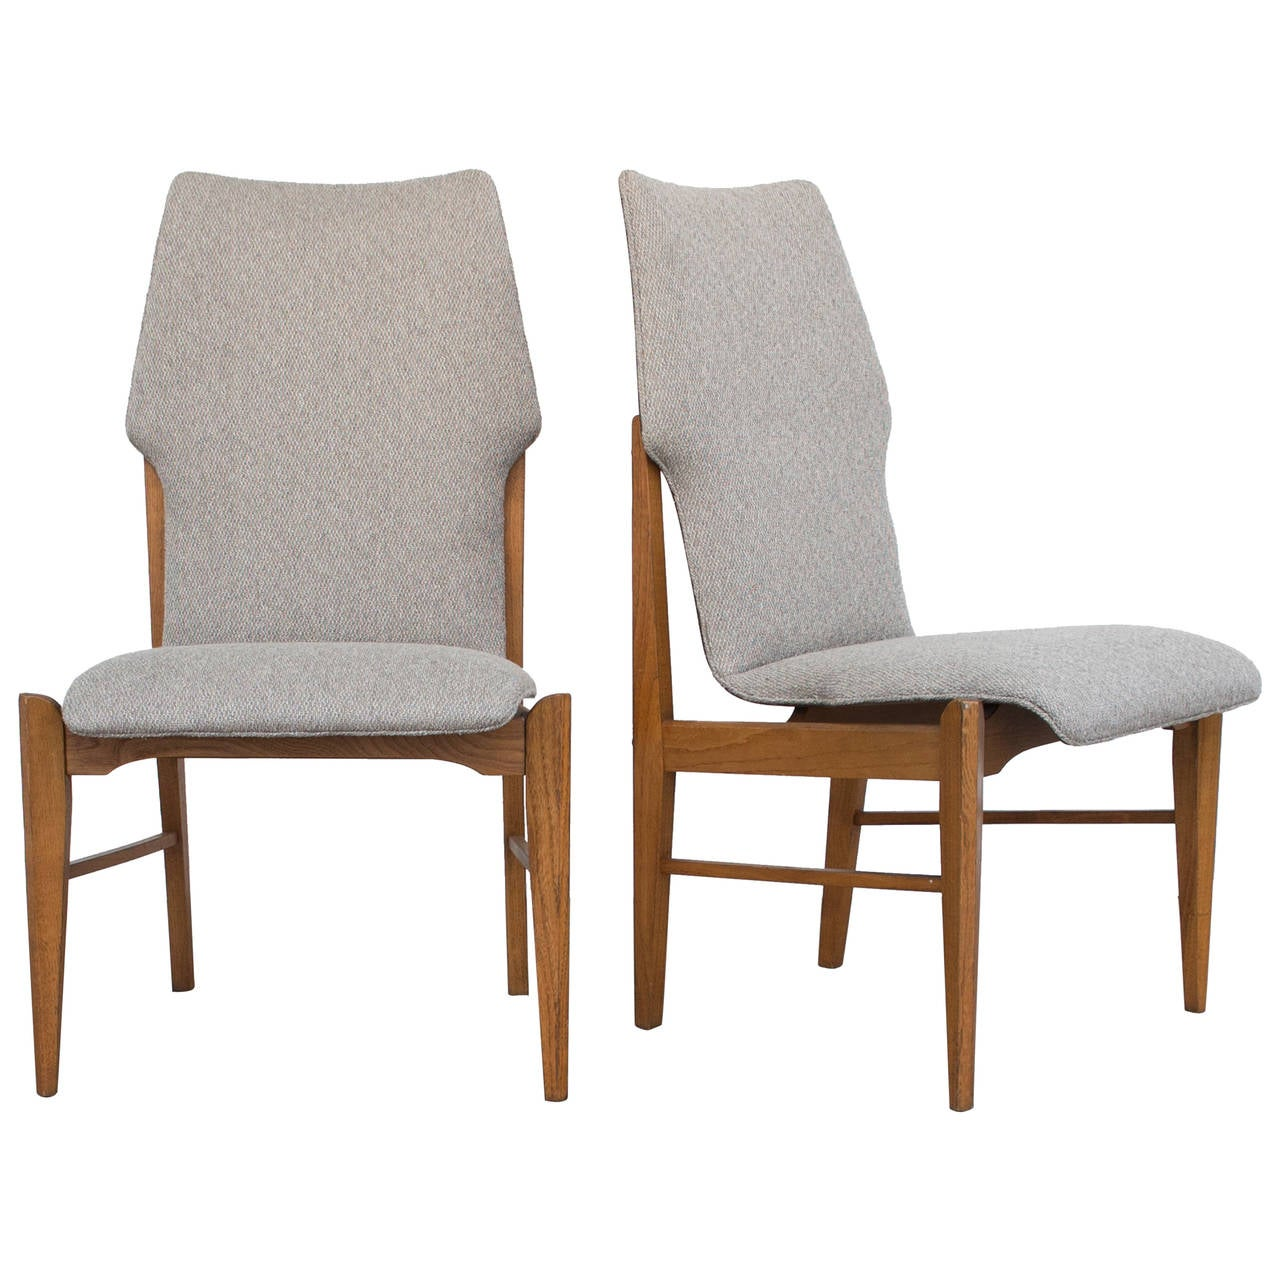 Four kodawood danish modern dining chairs at 1stdibs for Modern dining furniture